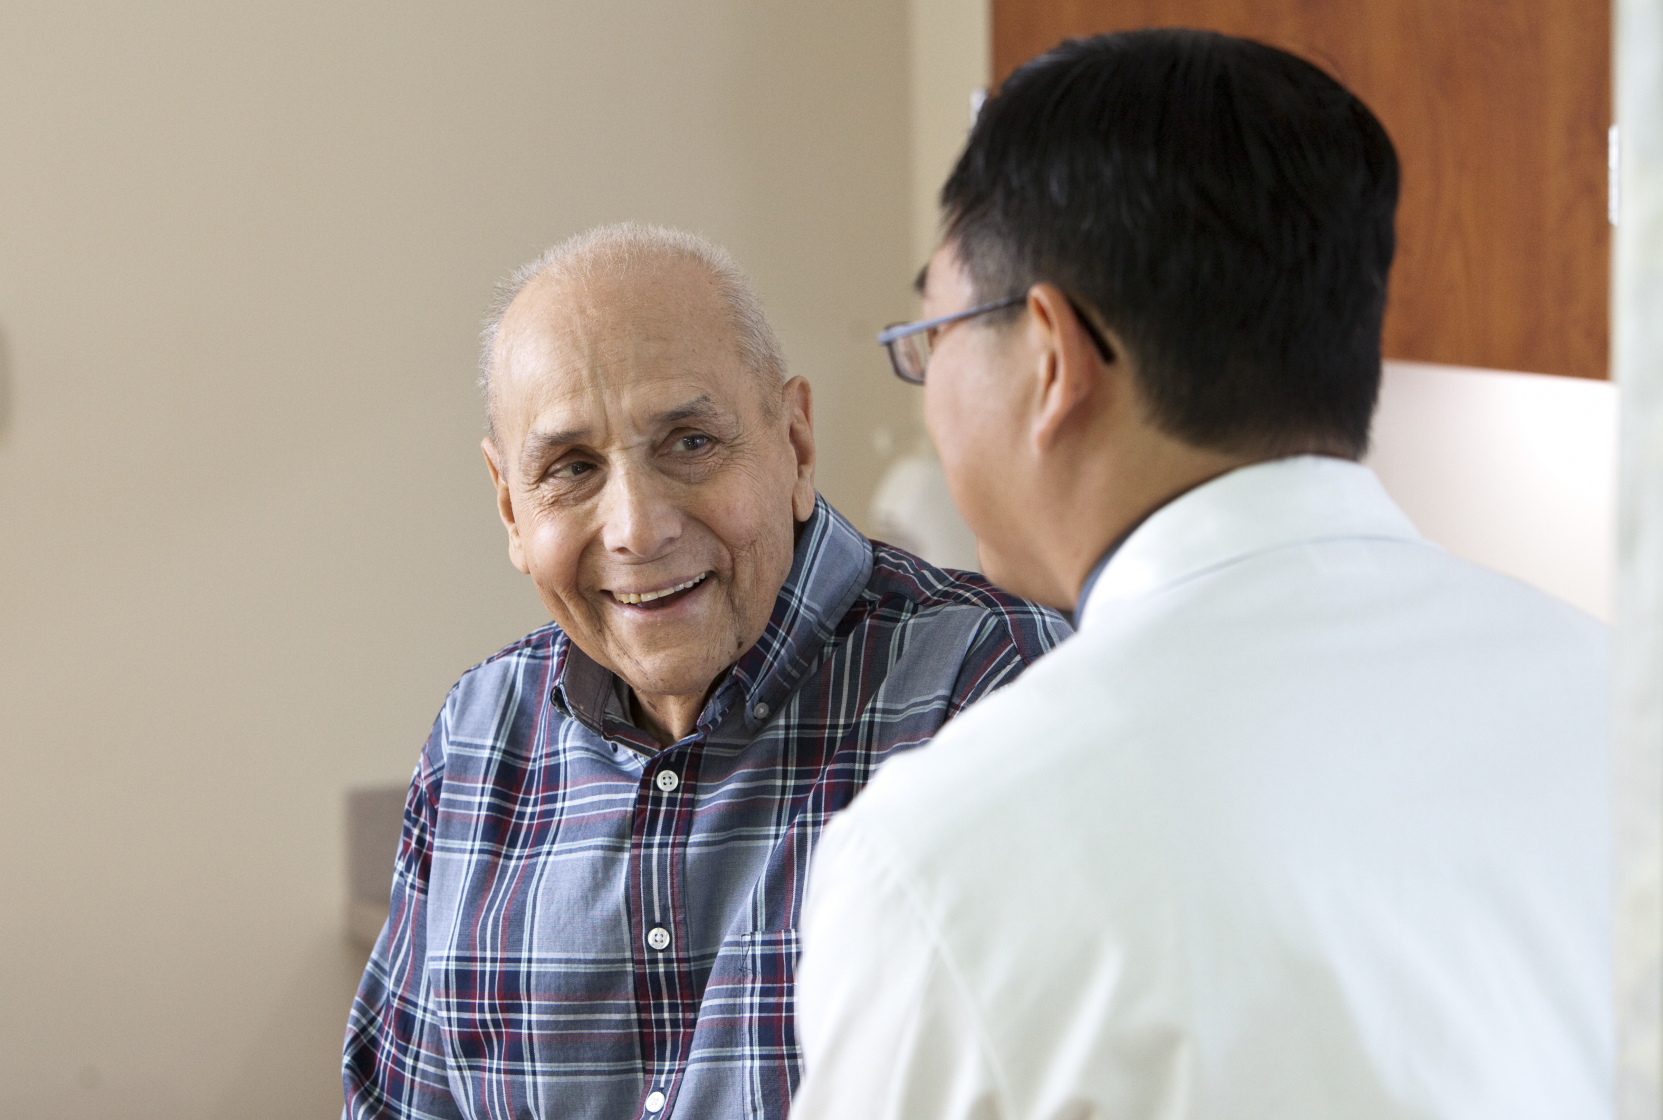 Dr. Tsu speaks with a patient